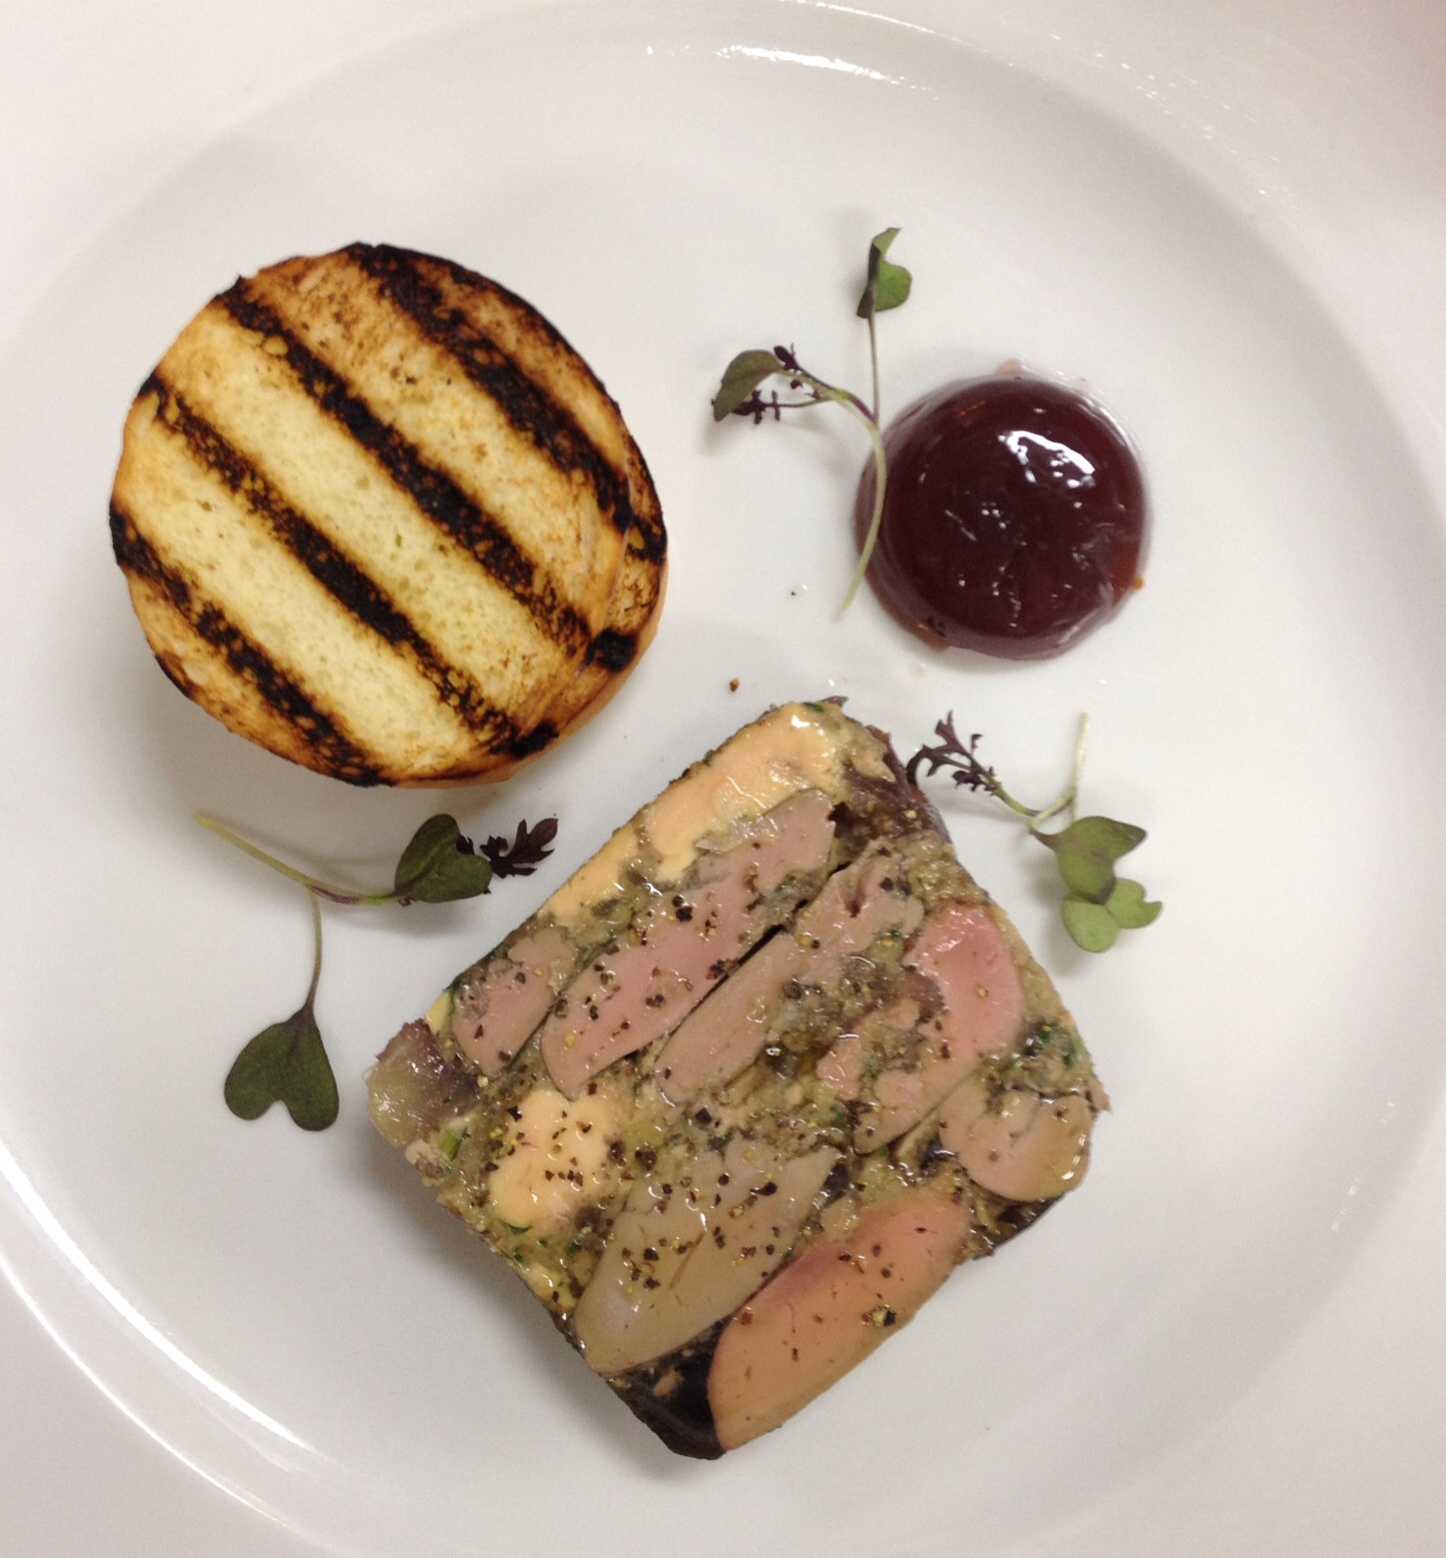 Foie gras & gressingham duck terrine